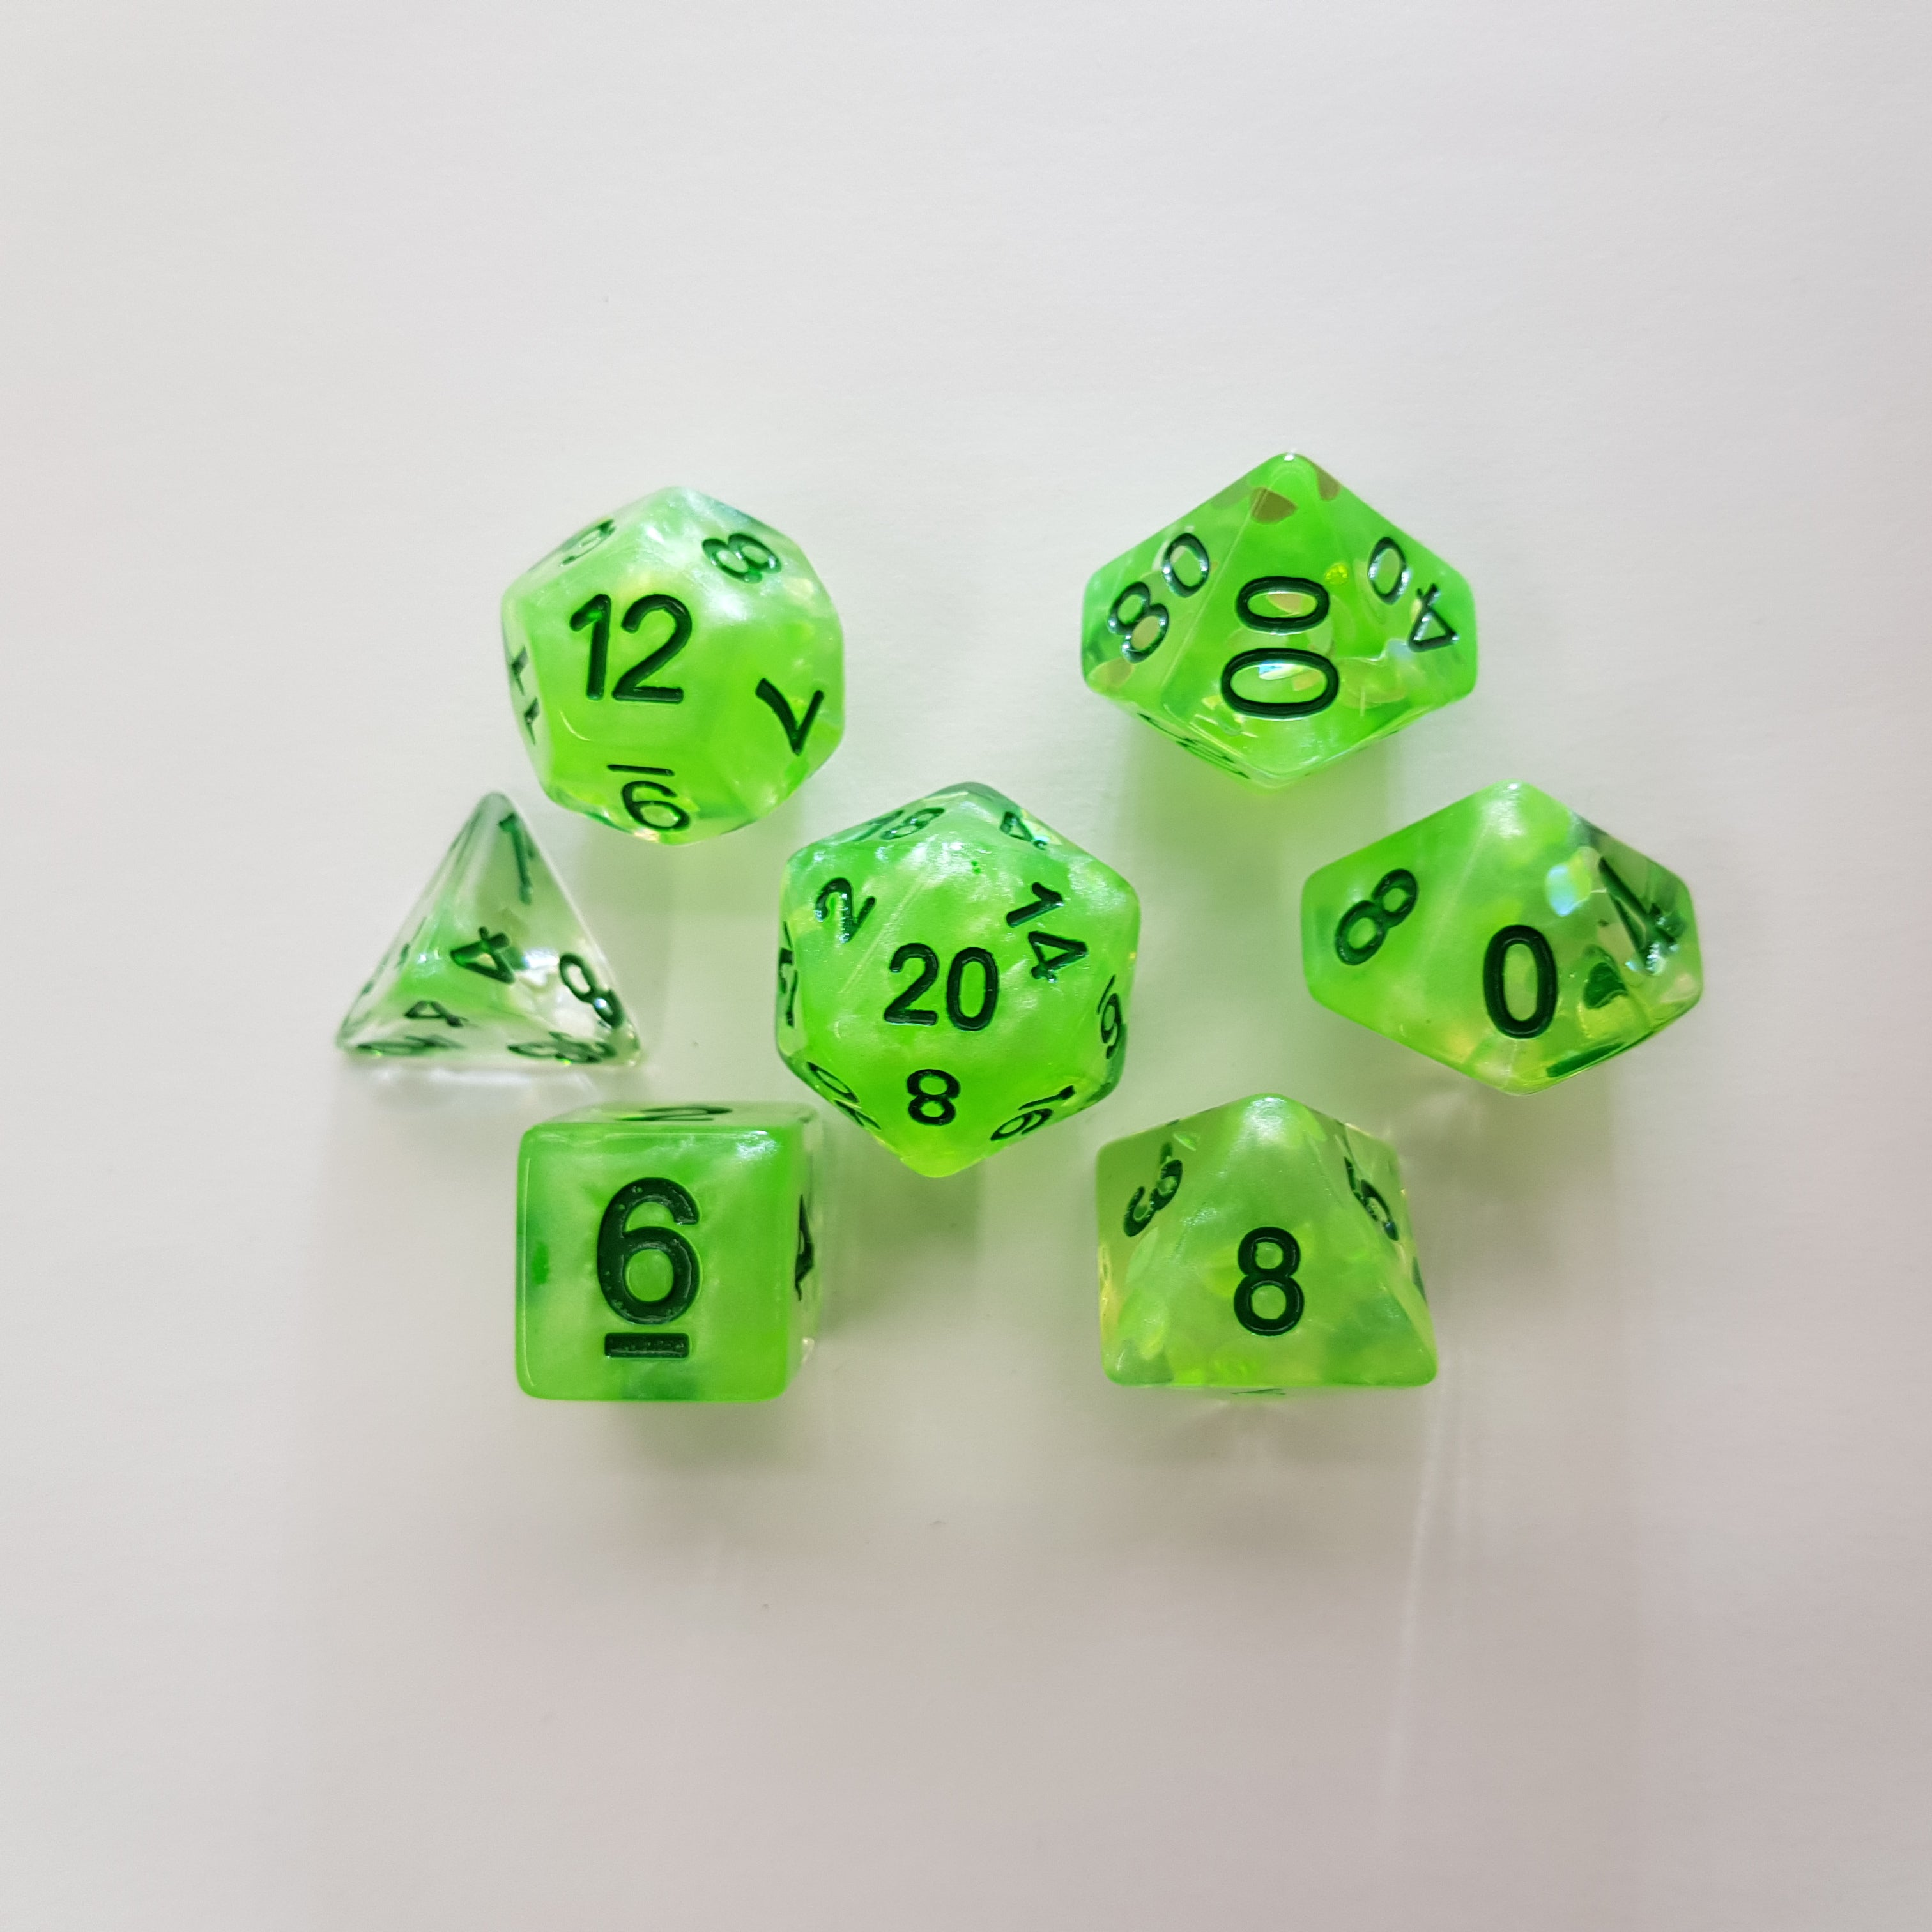 RPG Dice Set Four Seasons Spring Green - Kraken Dice | Sunny Pair'O'Dice